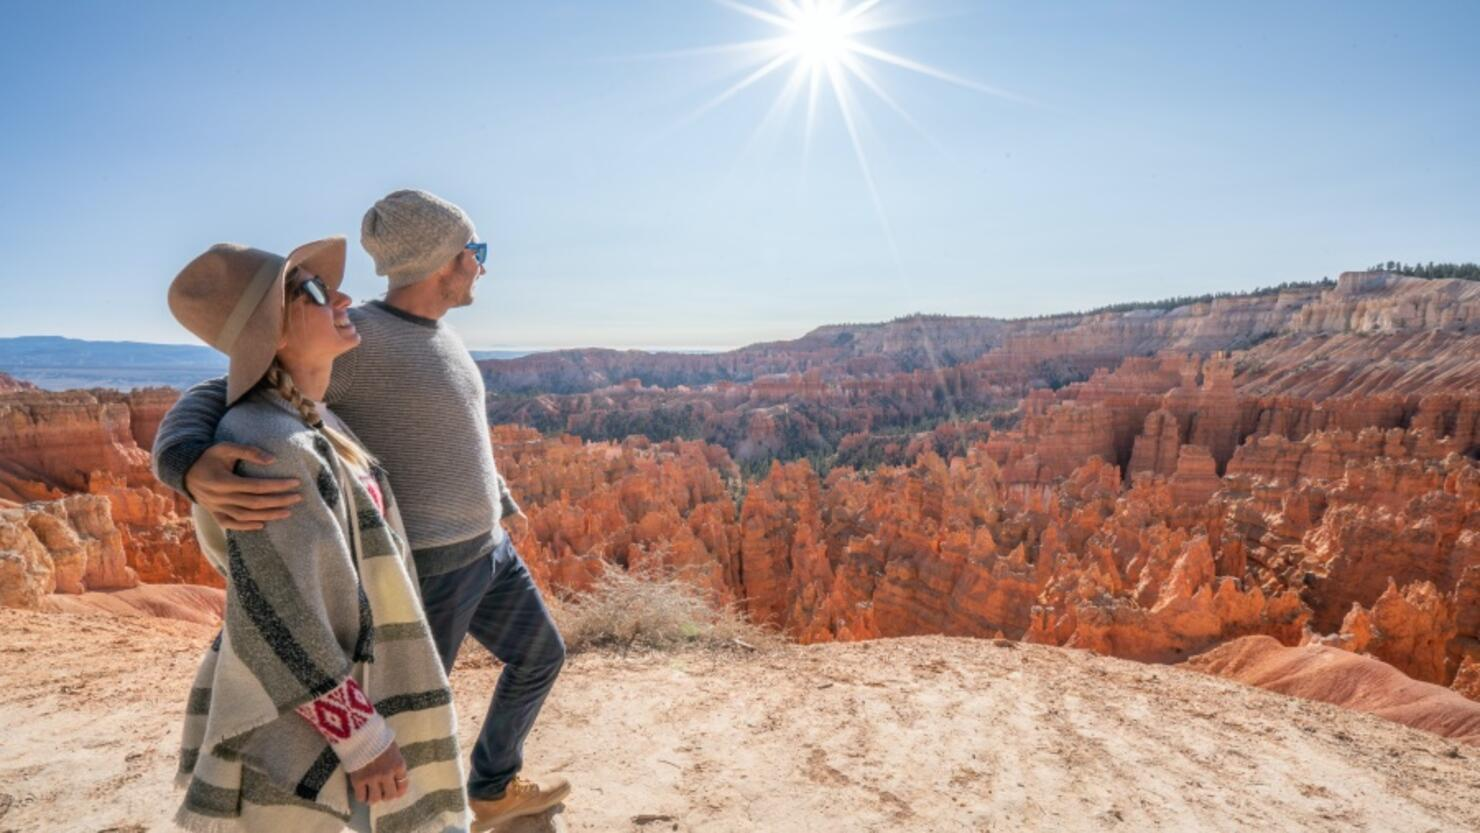 Young couple contemplating nature enjoying travel and adventure - America